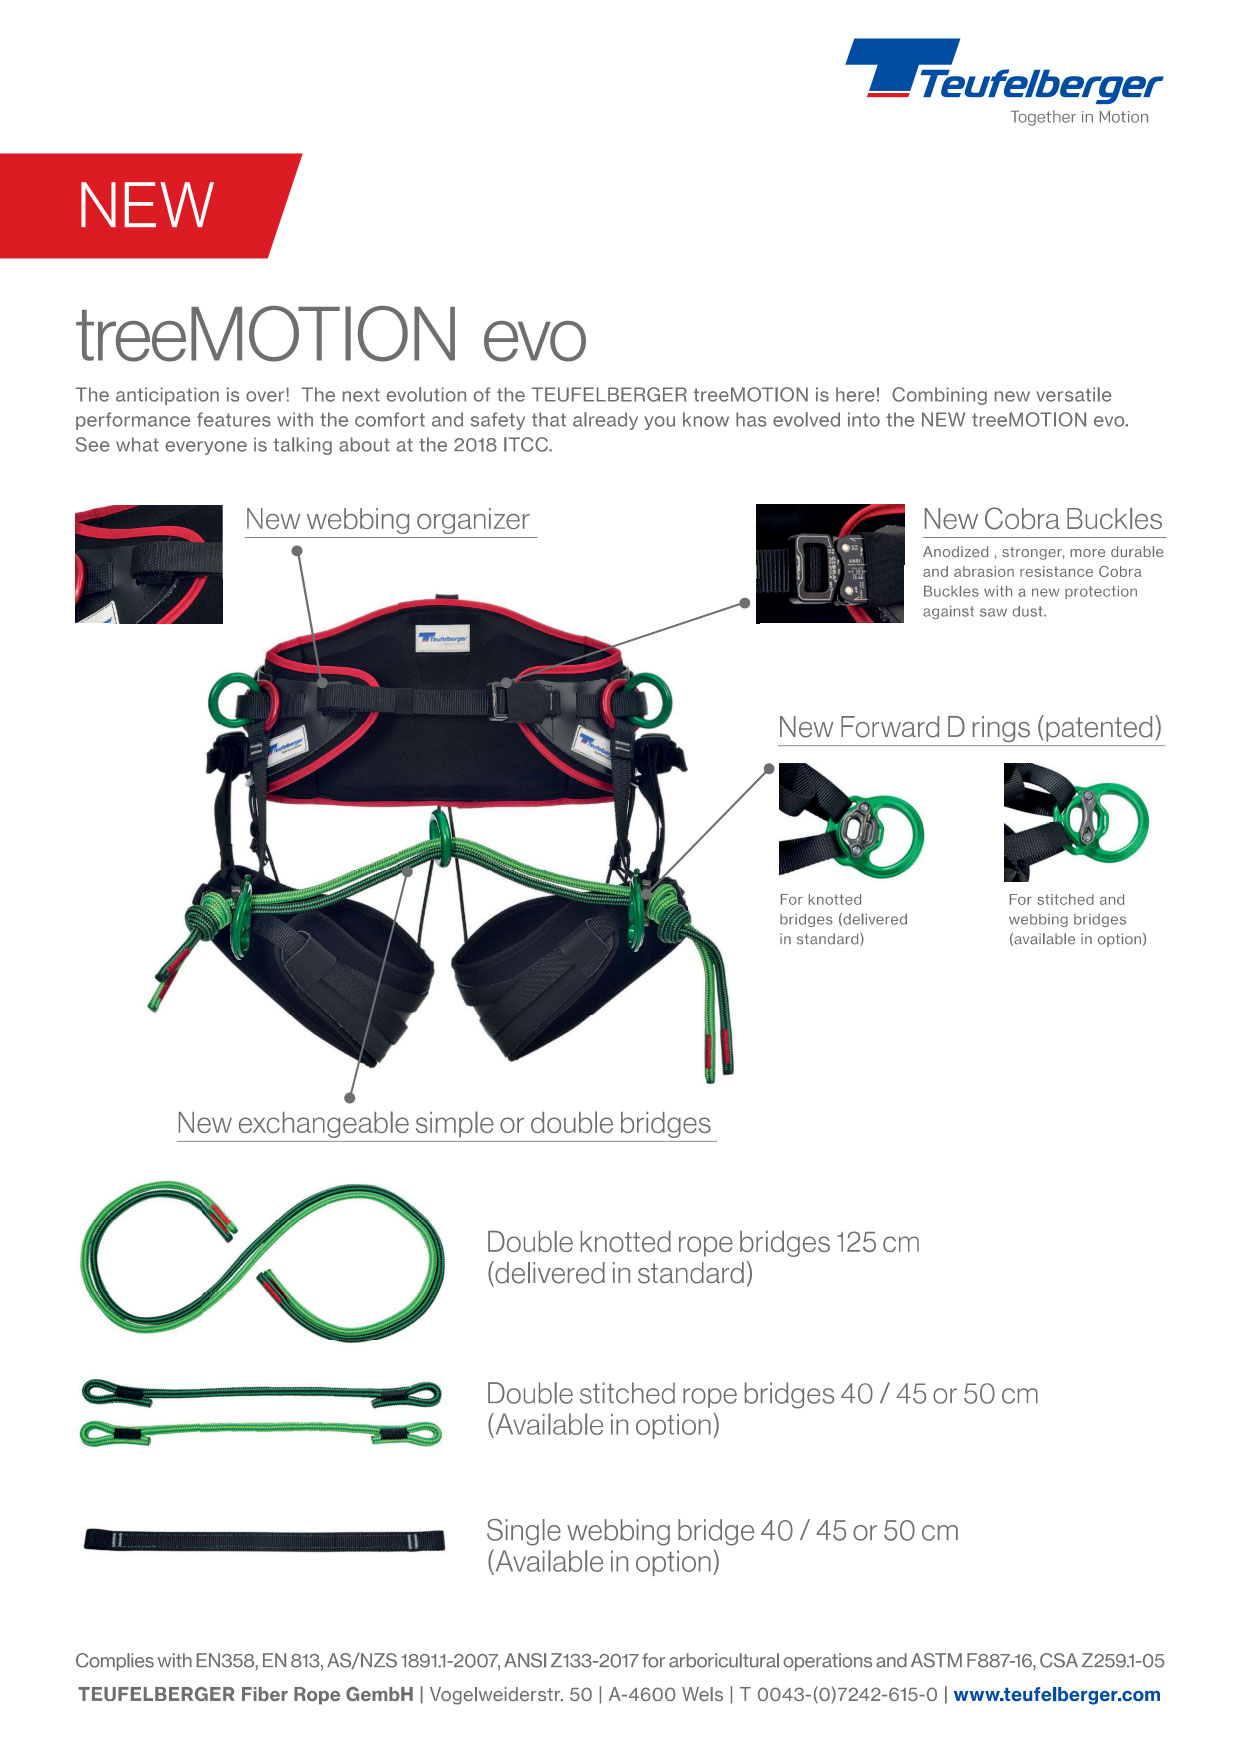 treemotion evo harness info